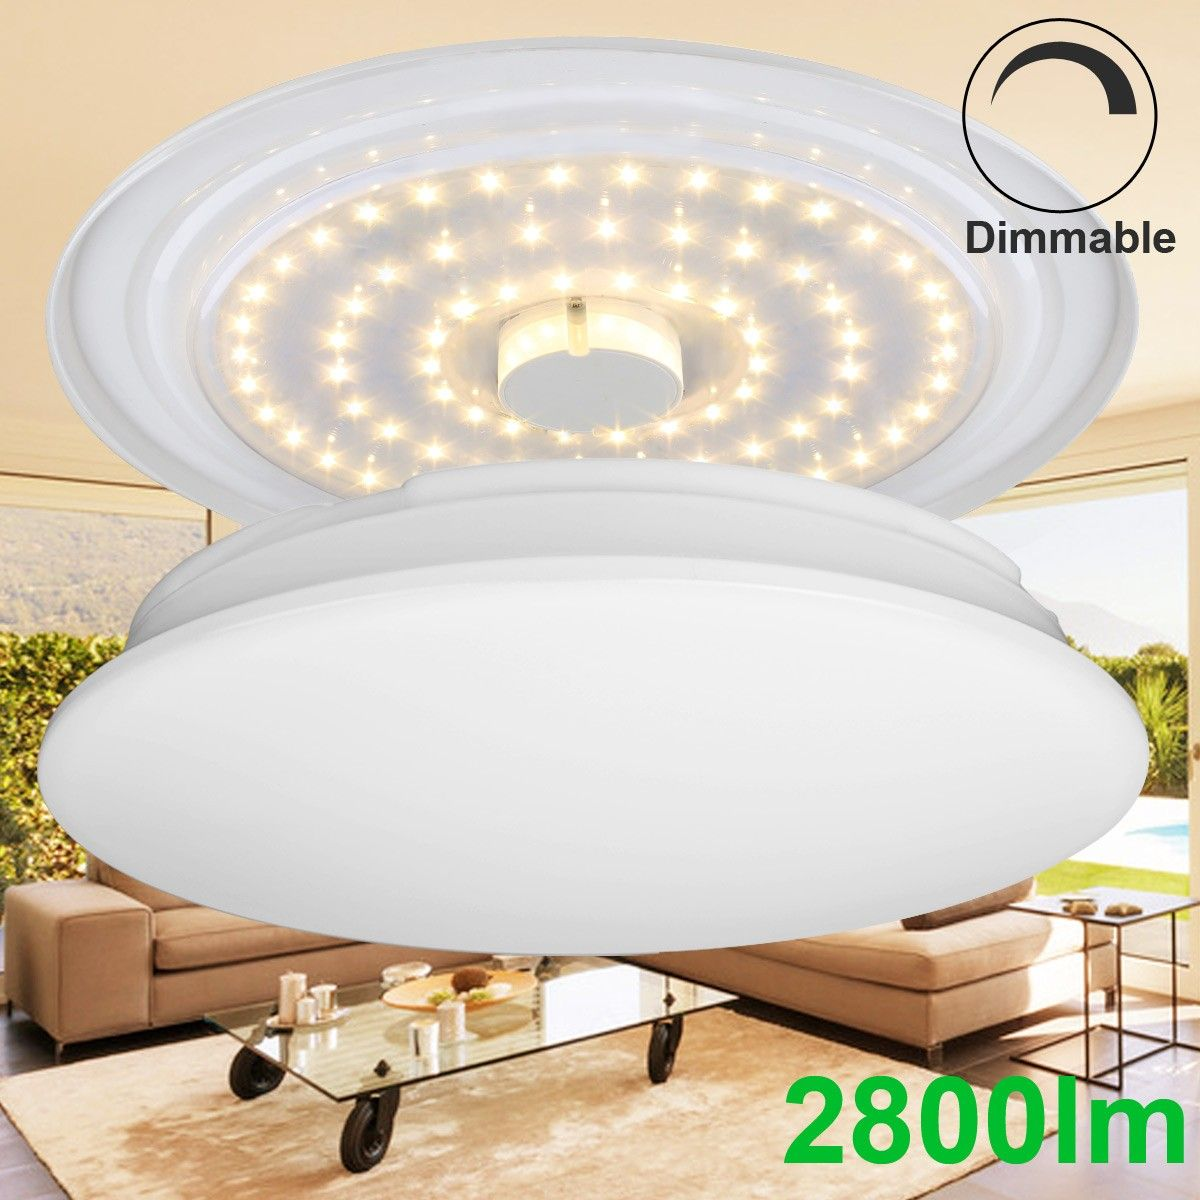 Super Bright 40W Dimmable LED Ceiling Lights, 2800lm, Warm White ...